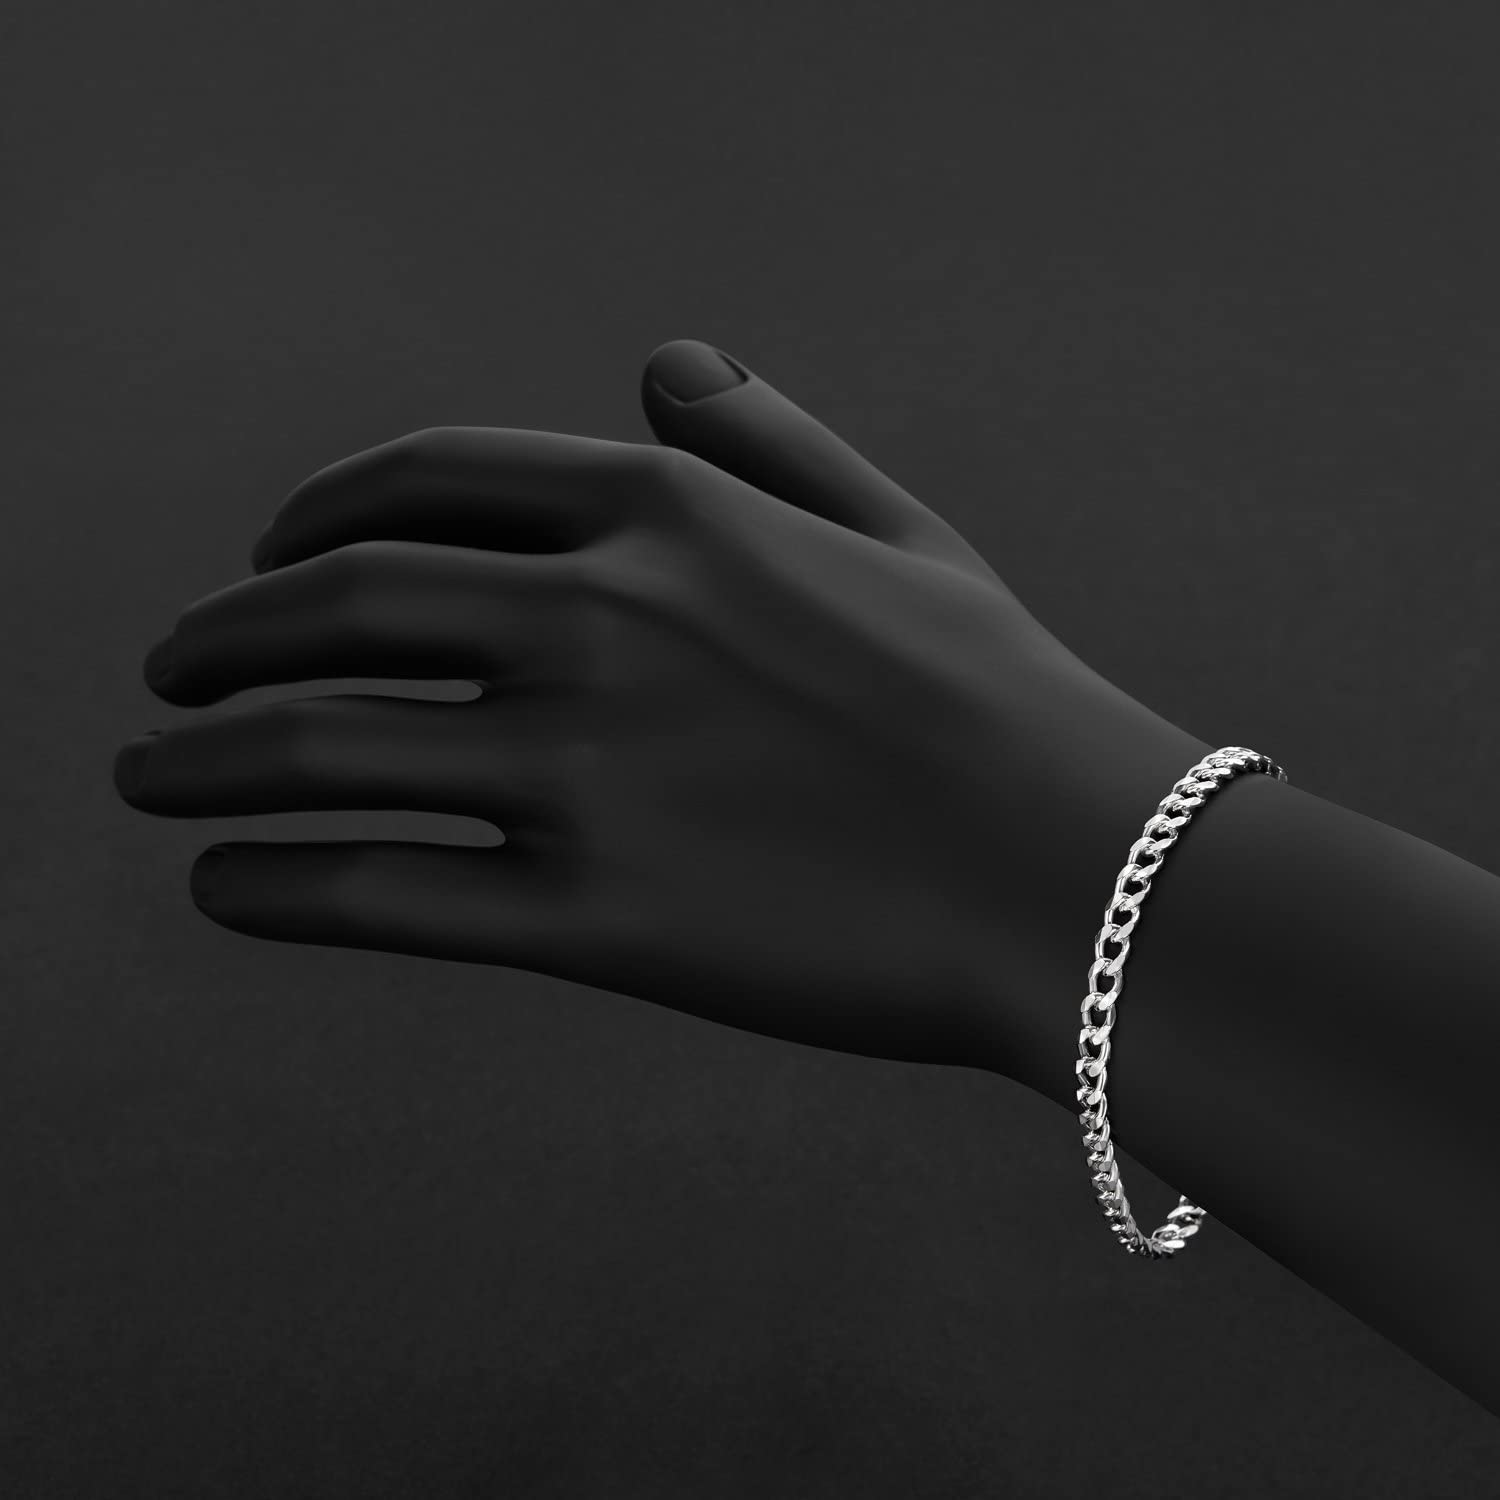 Beveled Curb Chain Bracelet Nickel Free 7-11 5mm High-Polished .925 Sterling Silver